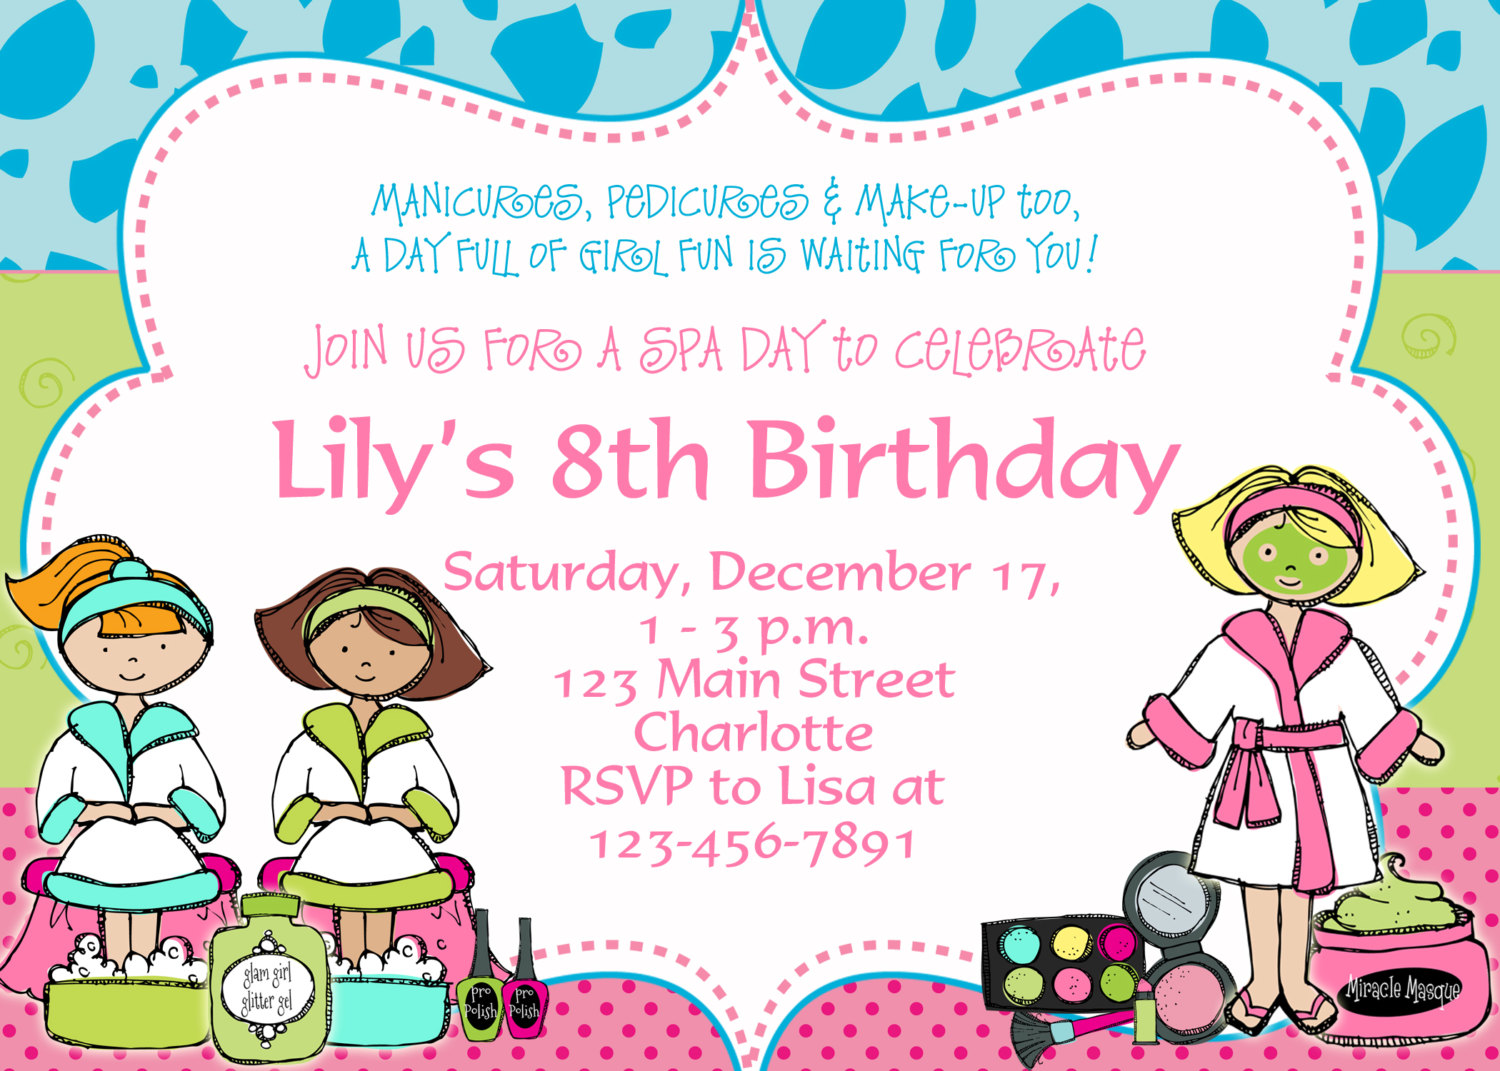 birthday party invitation card design ; Fabulous-How-To-Make-Birthday-Invitation-Cards-41-for-Your-Invitation-Design-with-How-To-Make-Birthday-Invitation-Cards